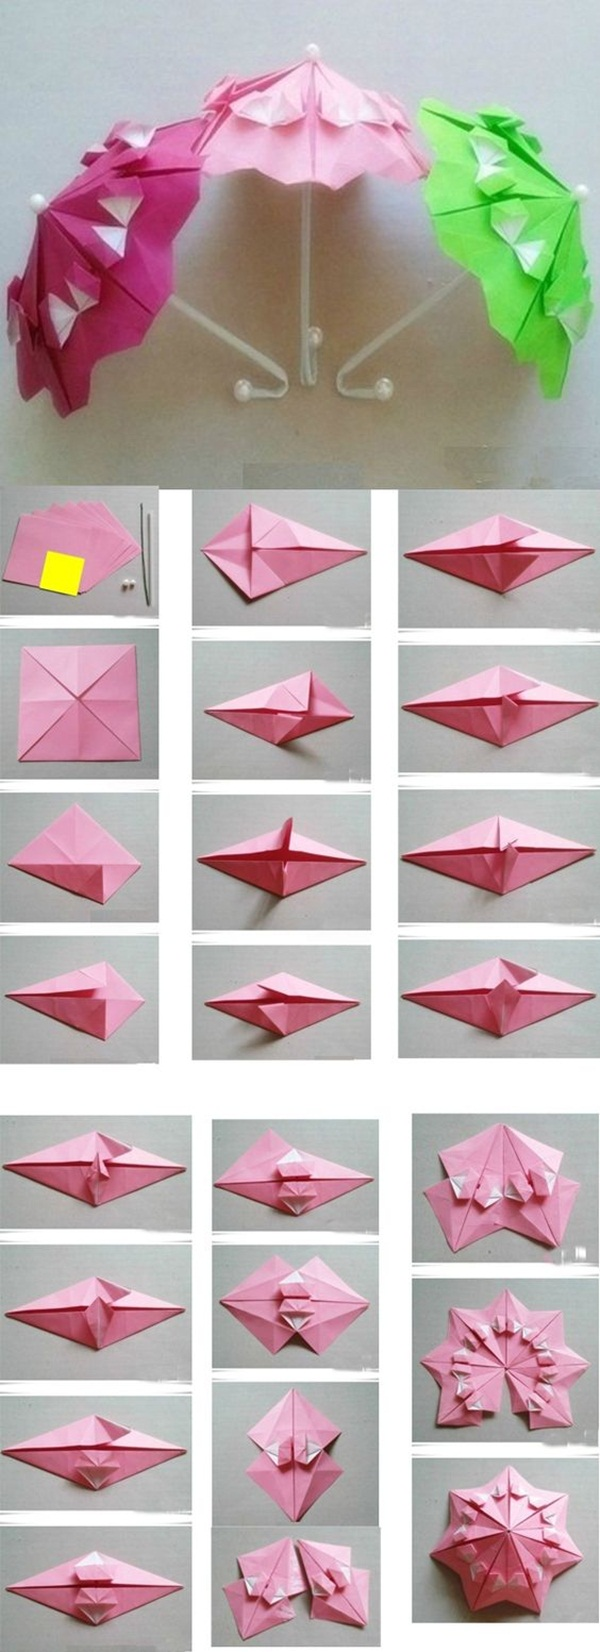 easy-origami-for-kids19